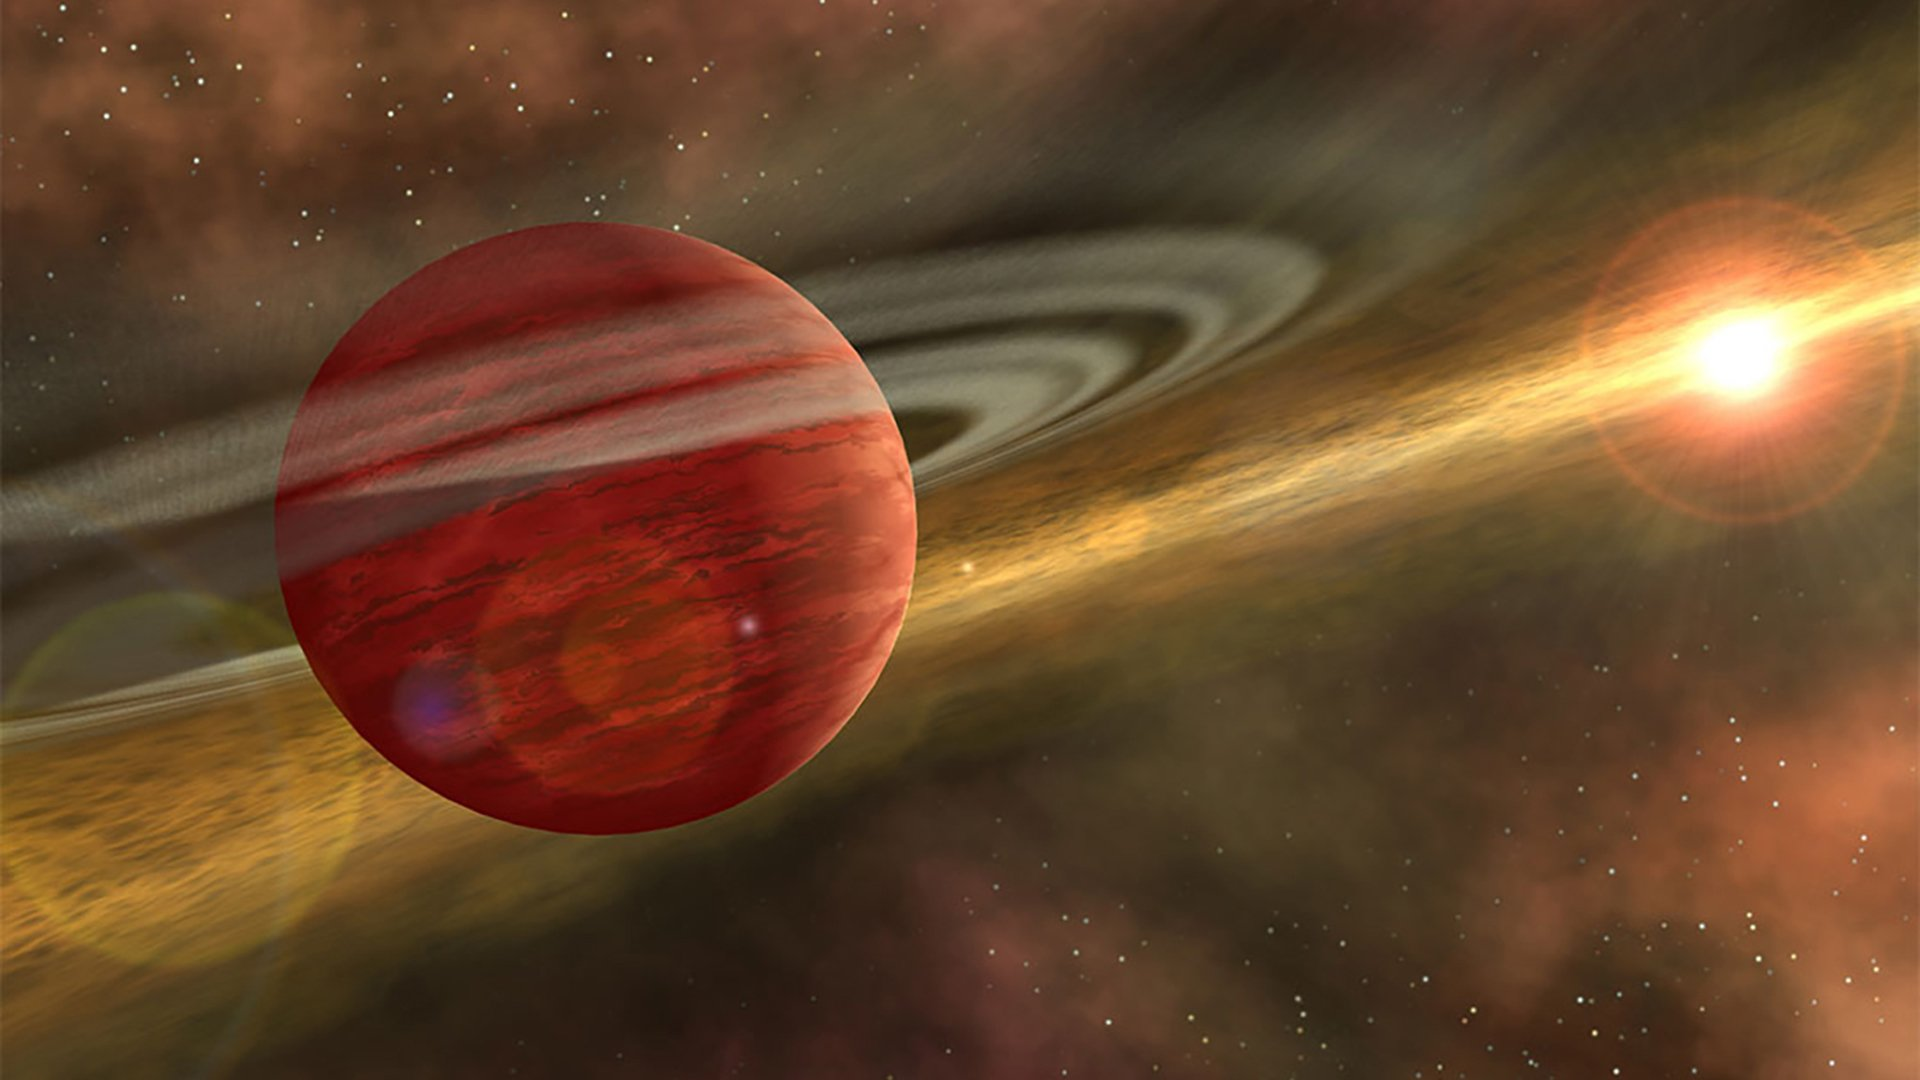 Artist's conception of a massive planet orbiting a cool, young star.(Credit: NASA/JPL-Caltech/R. Hurt)